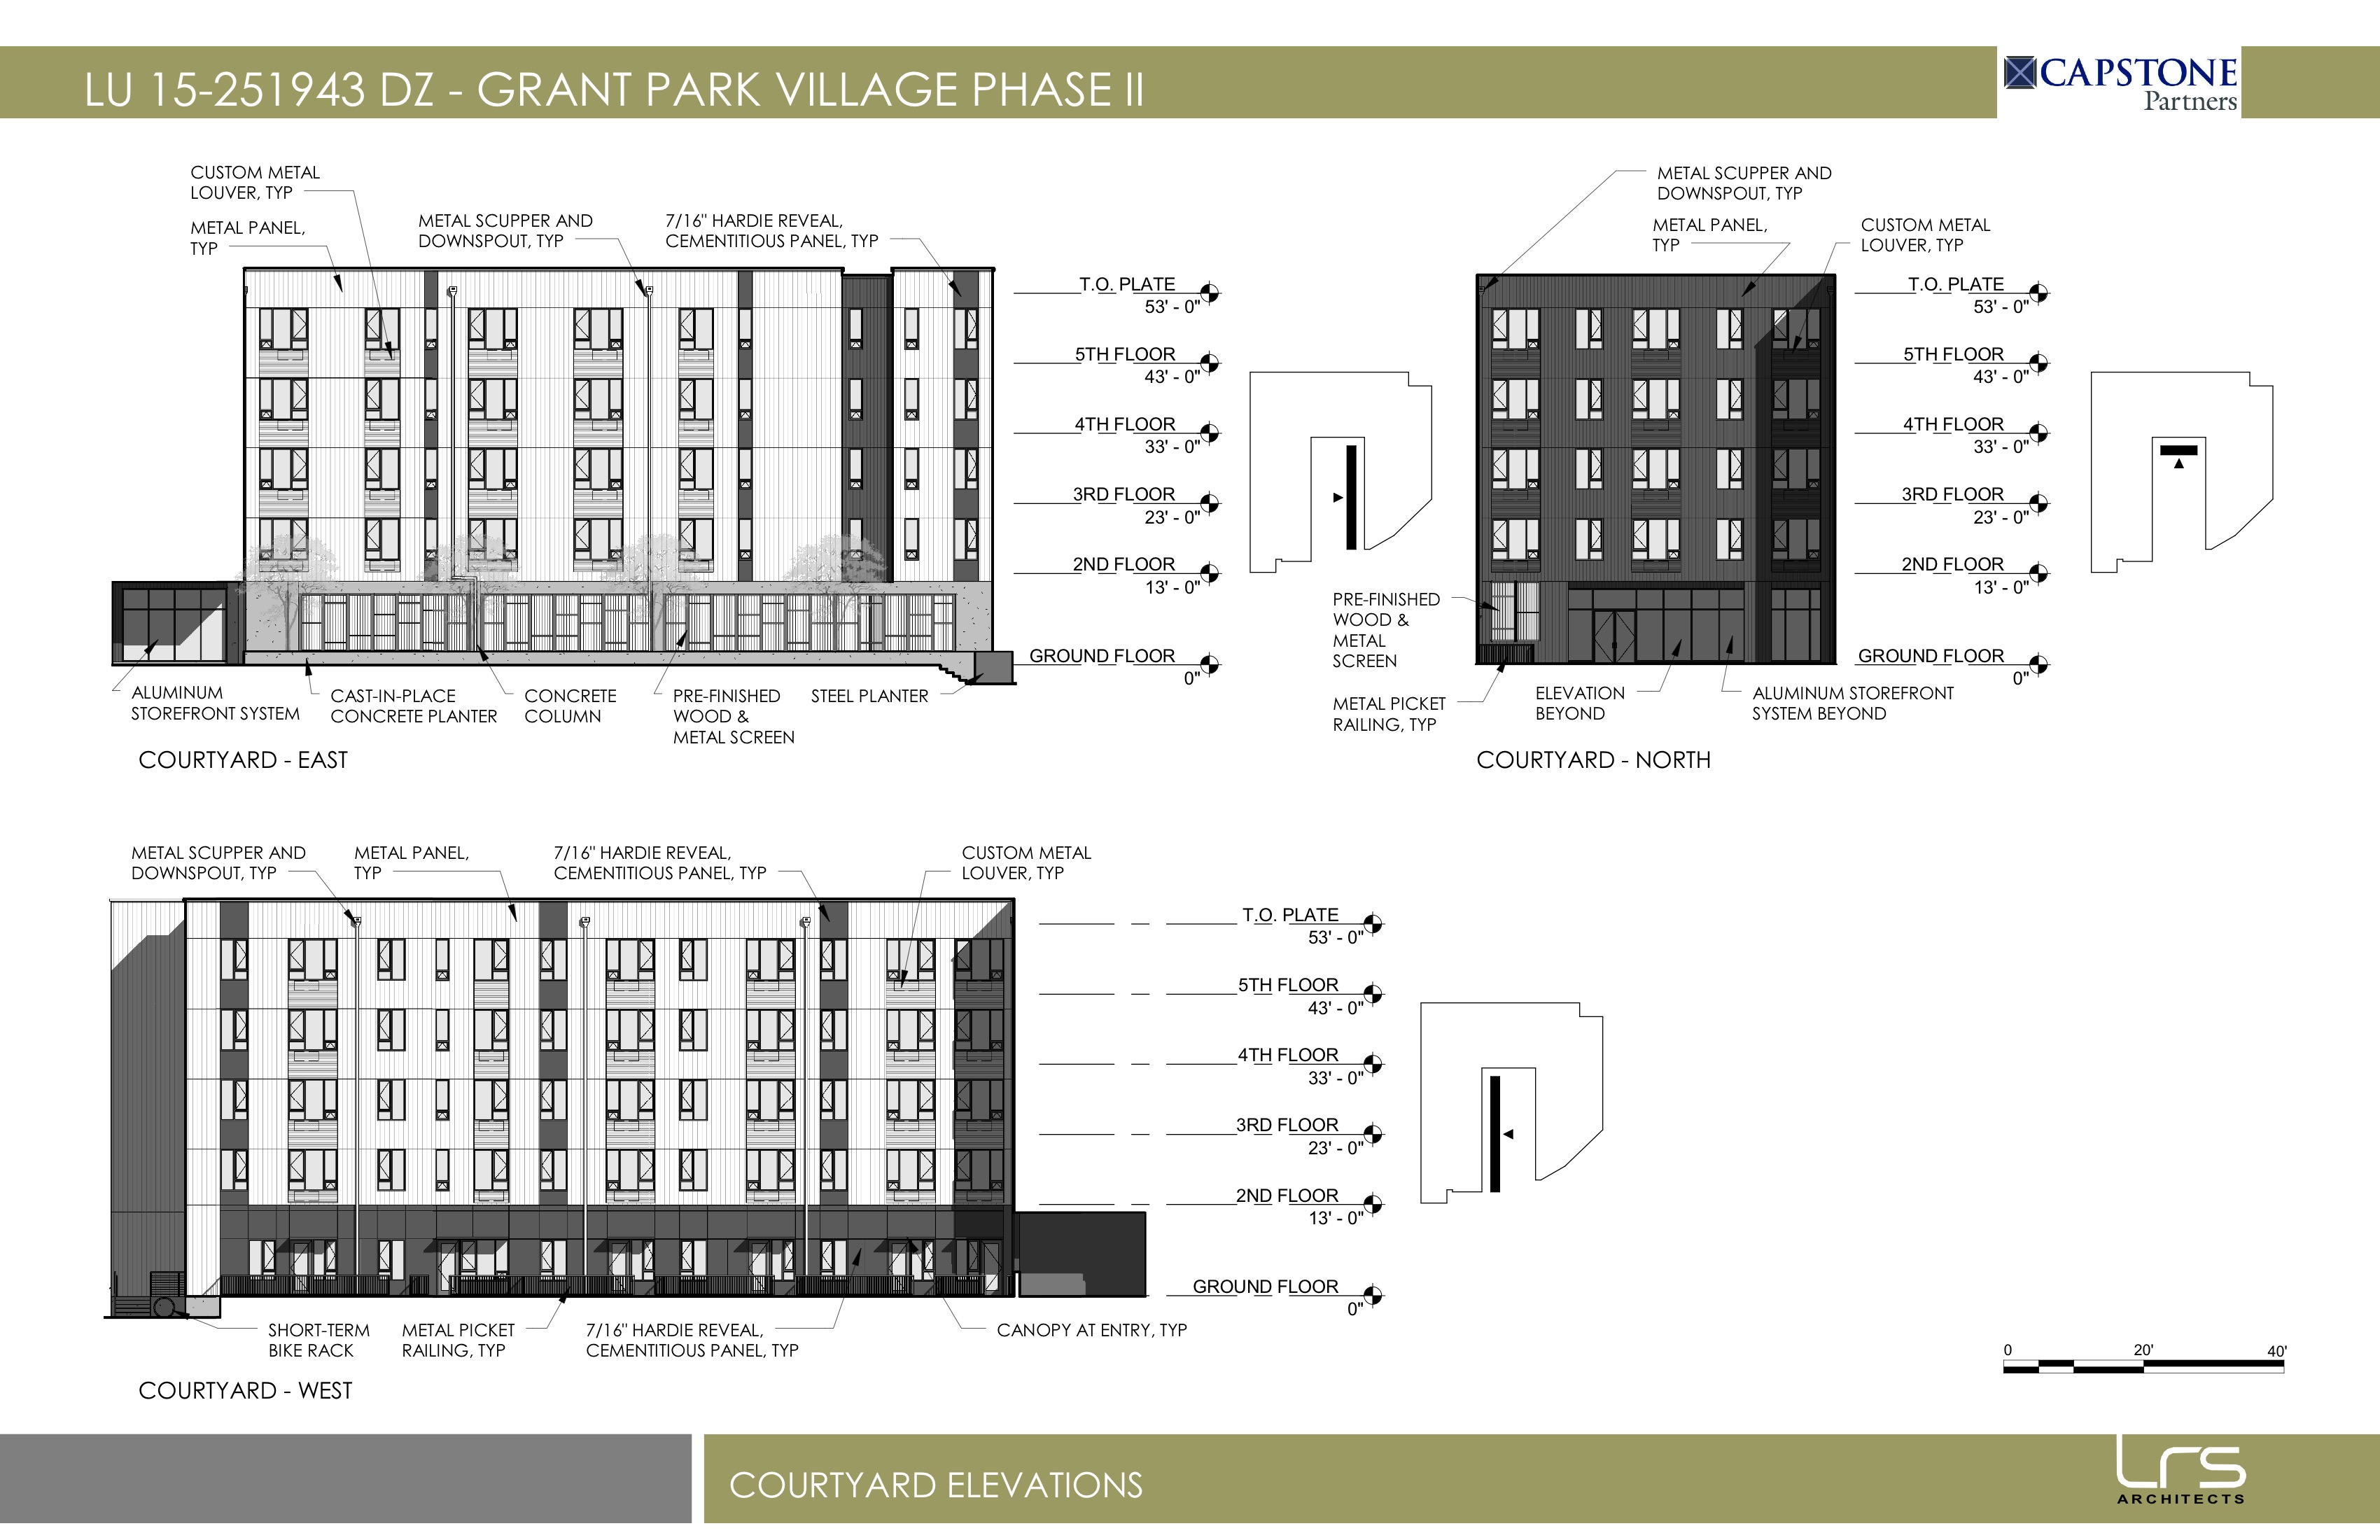 Grant Park Village Phase II